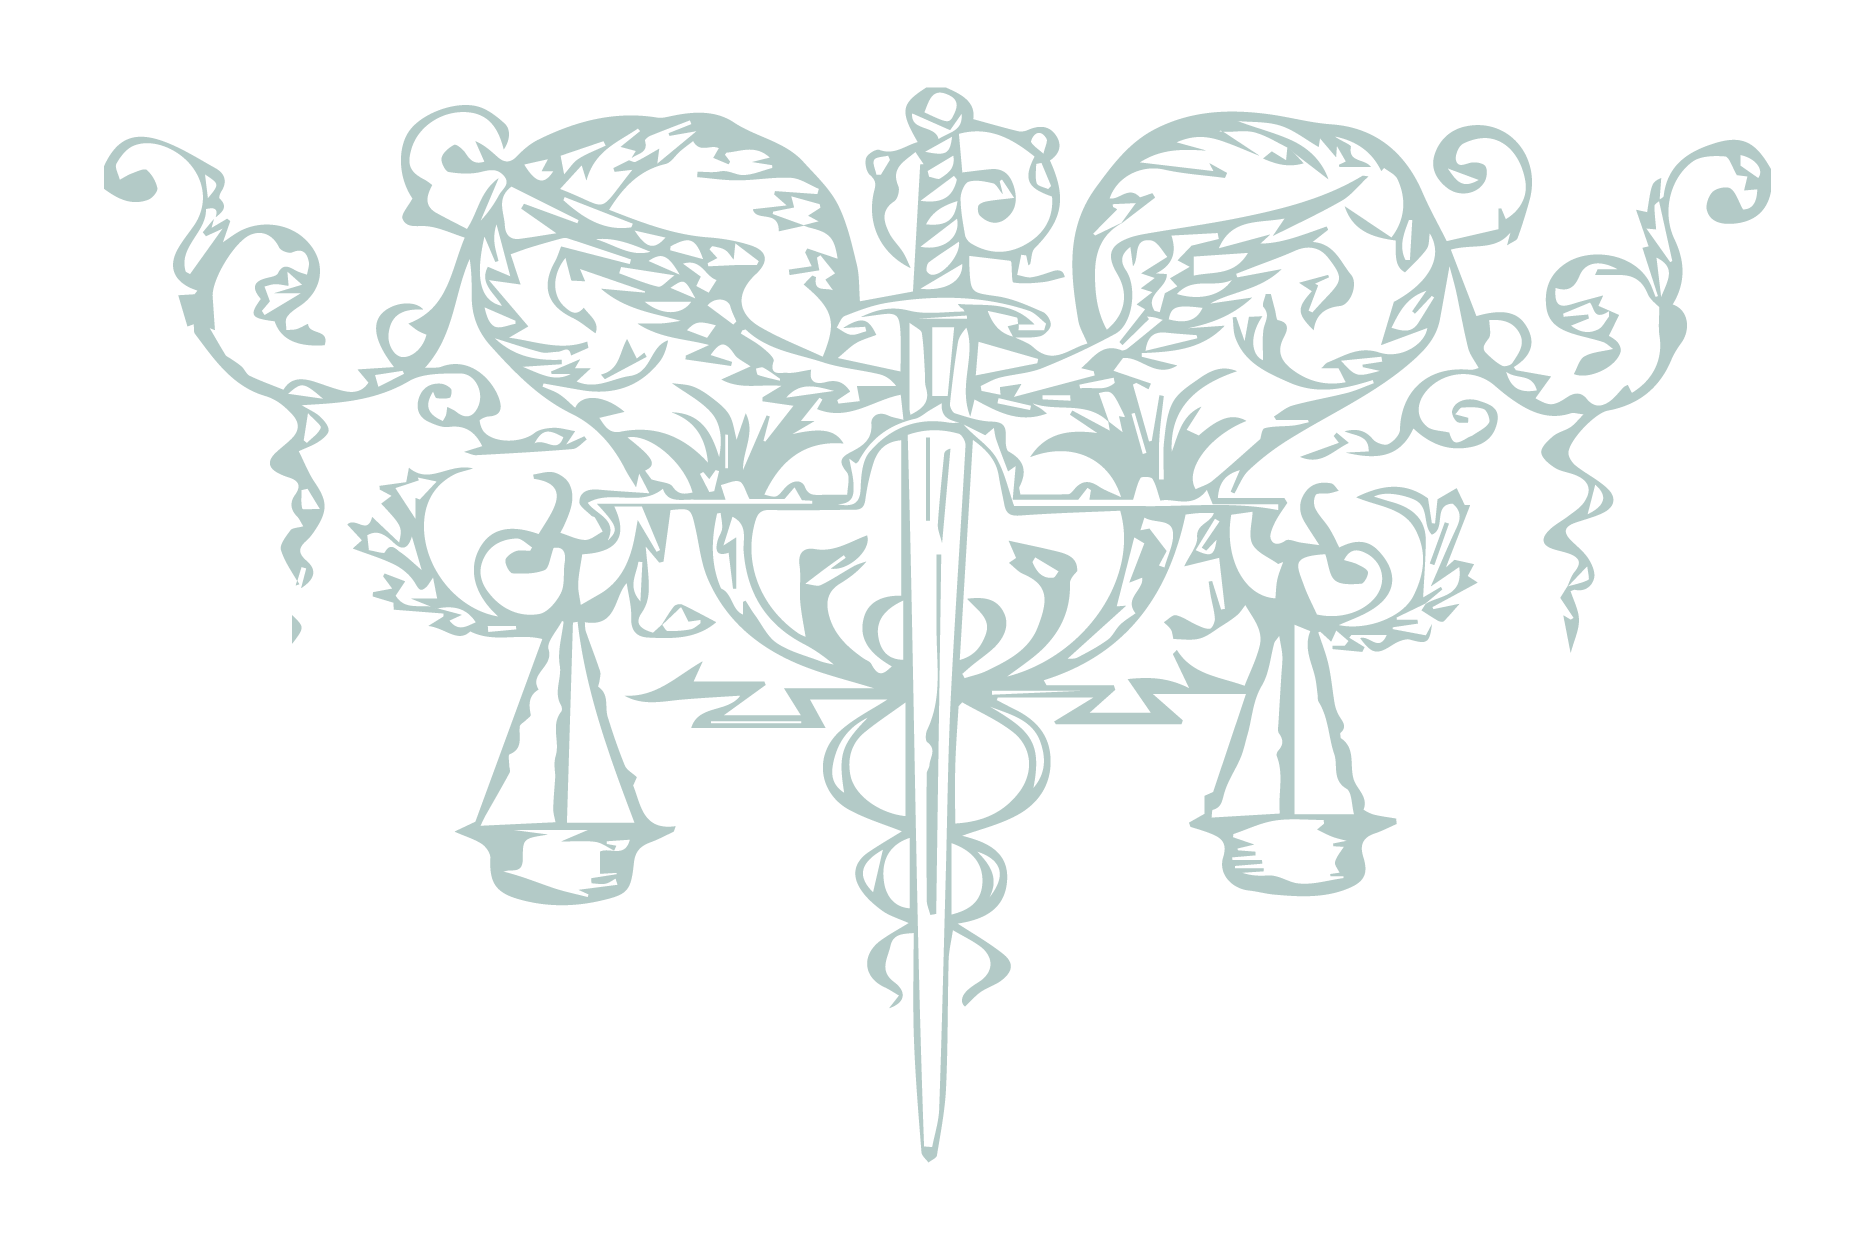 An illustration of a pair of scales with the twin snakes of Caduceus entwining a dagger between them